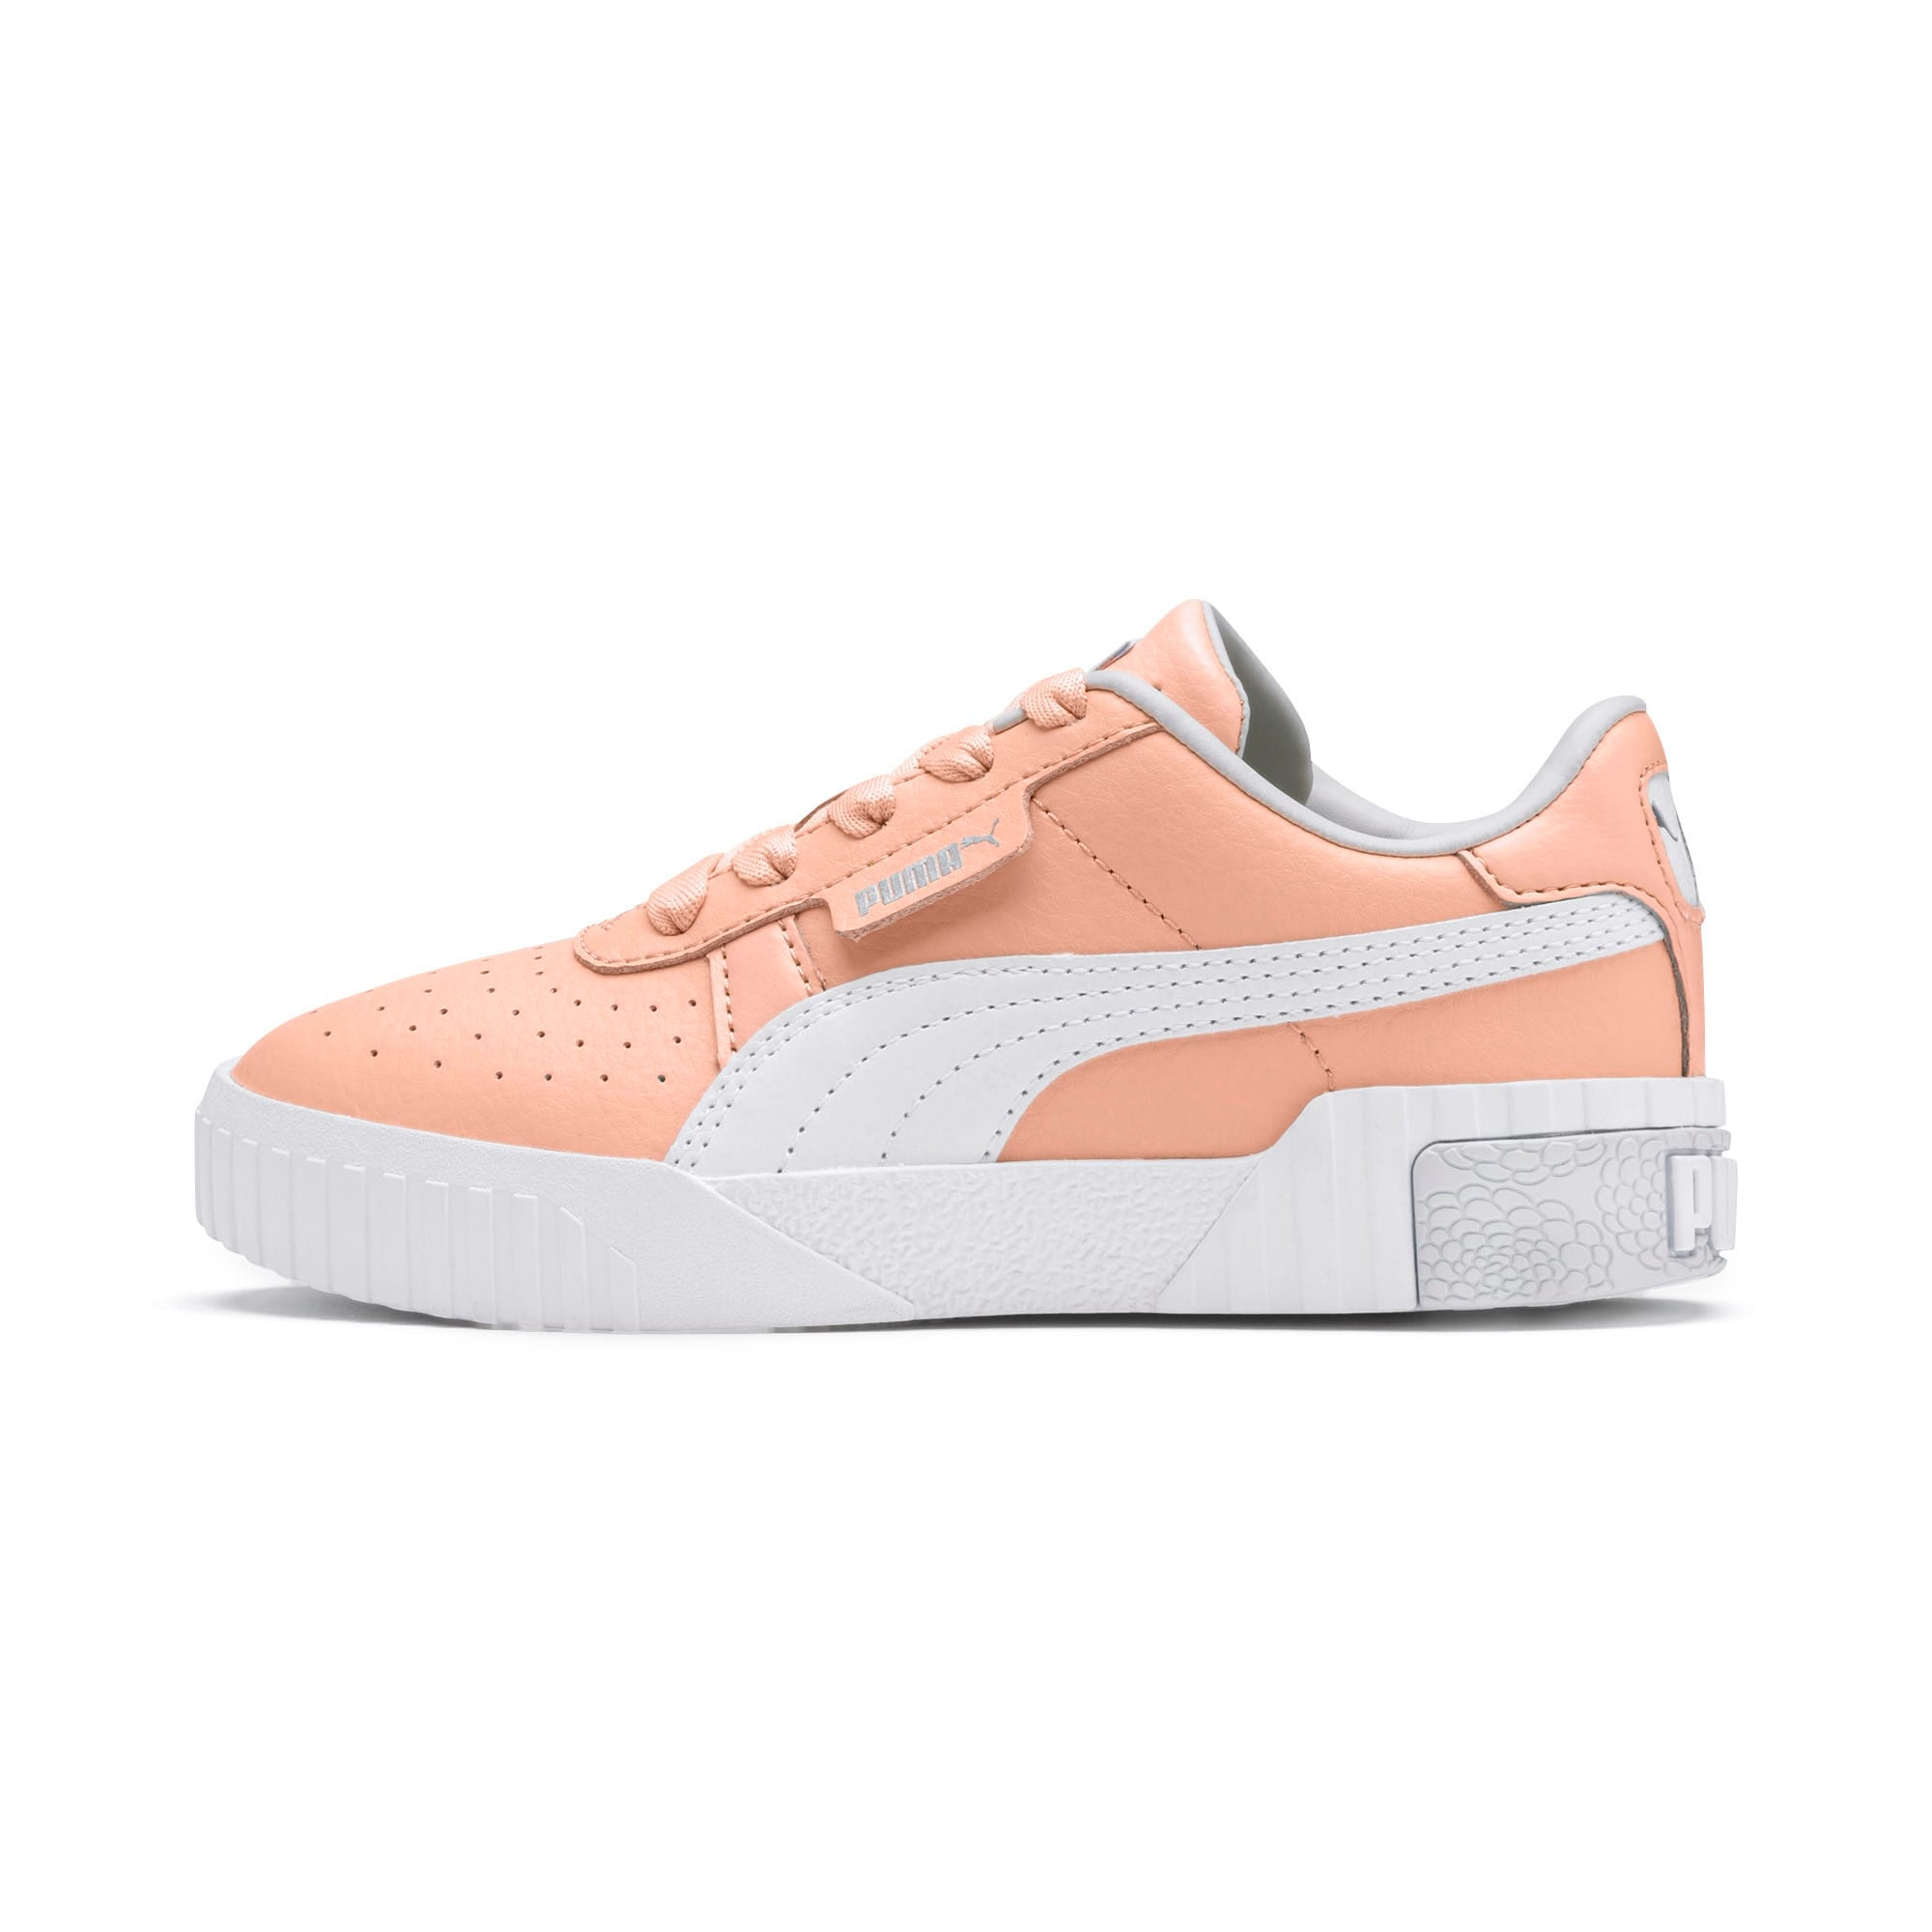 Thumbnail 1 of Cali Girls' Trainers, Peach Parfait-Heather, medium